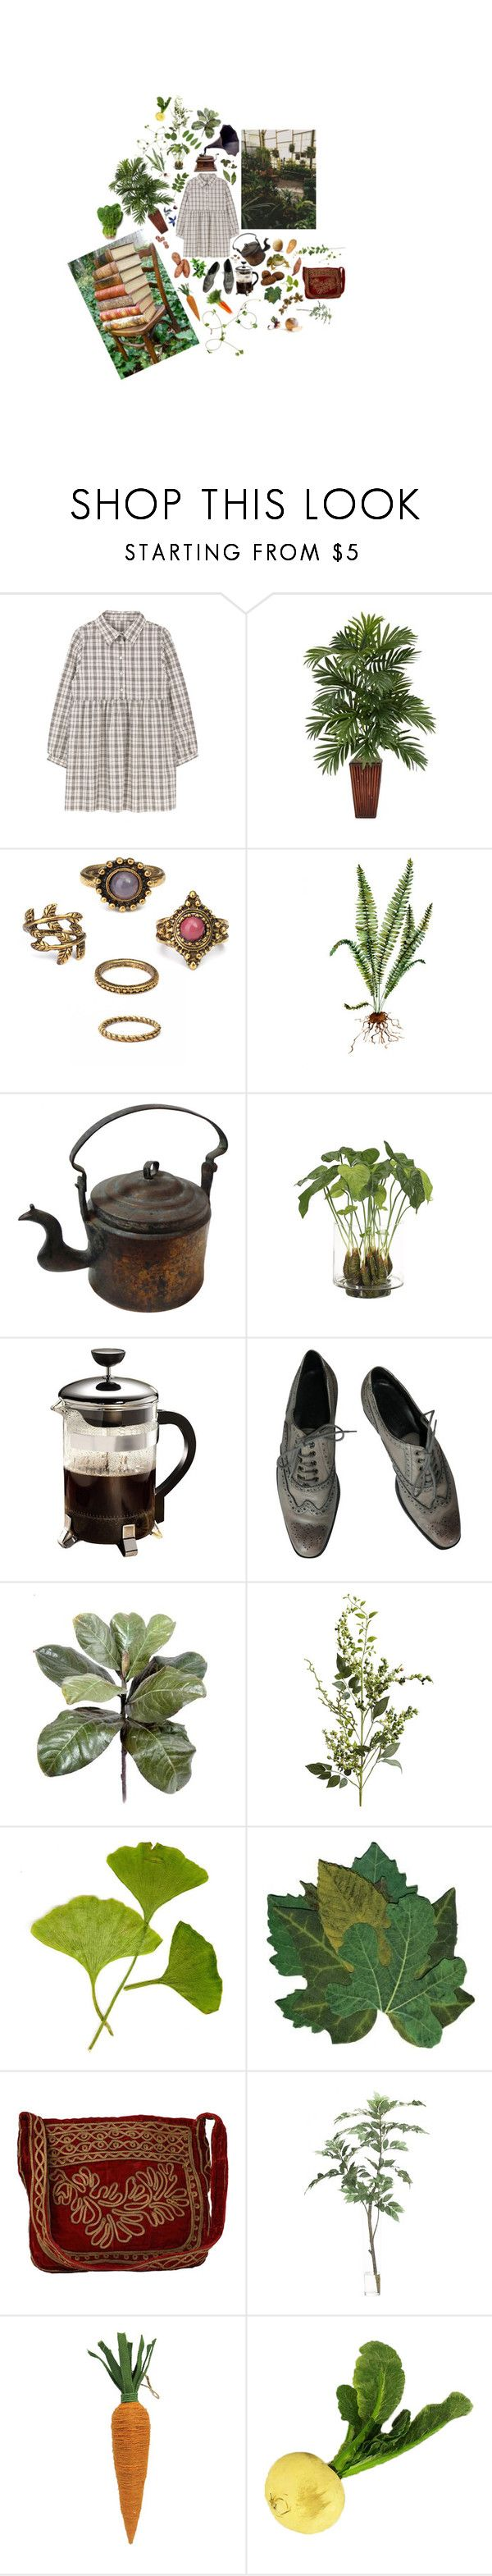 """Mundanity"" by flyingmonkeys1995 ❤ liked on Polyvore featuring Zephyr, Nearly Natural, Victrola, NDI, Primula, Strenesse, Pier 1 Imports, HOBO, For Strange Women and Vitamin A"